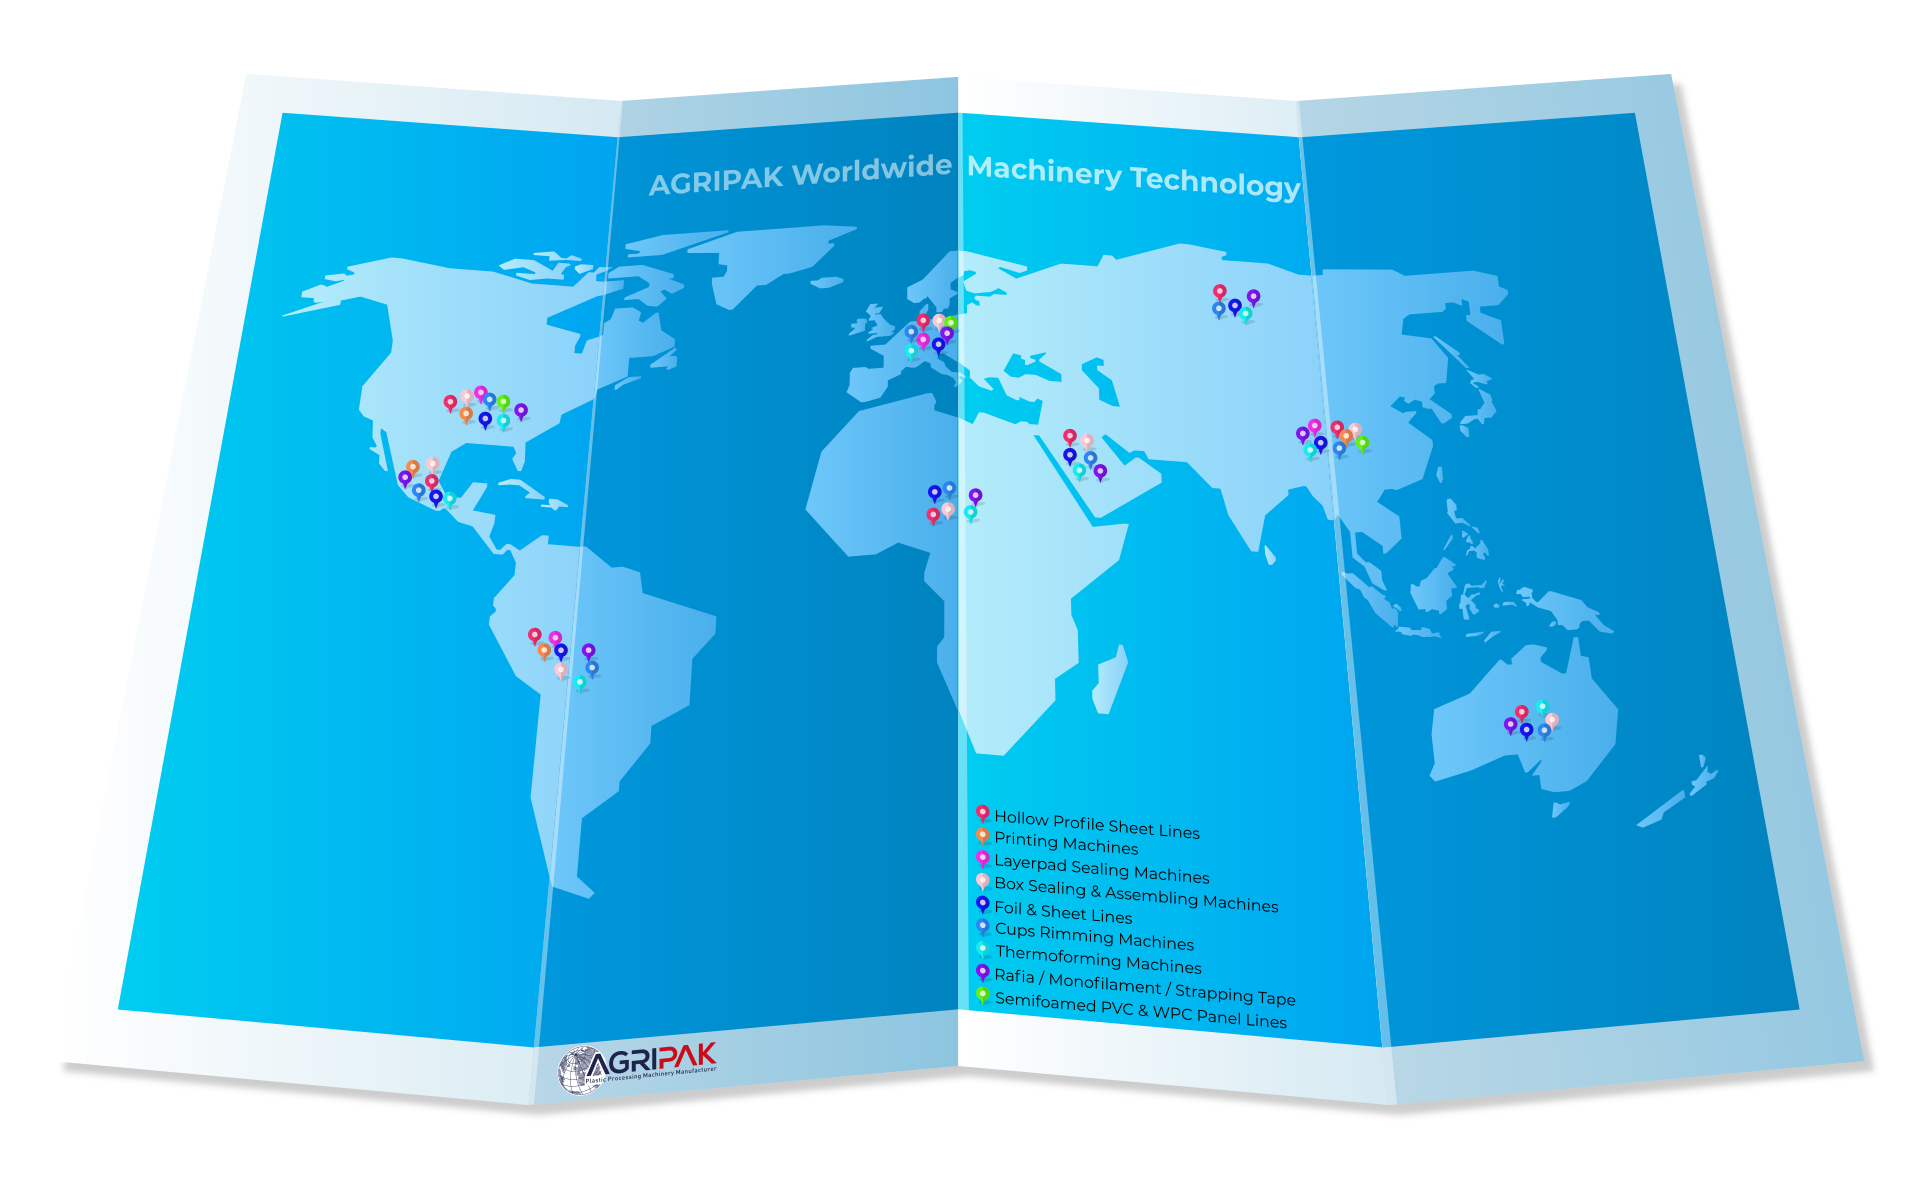 Agripak Worldwide Technology Map